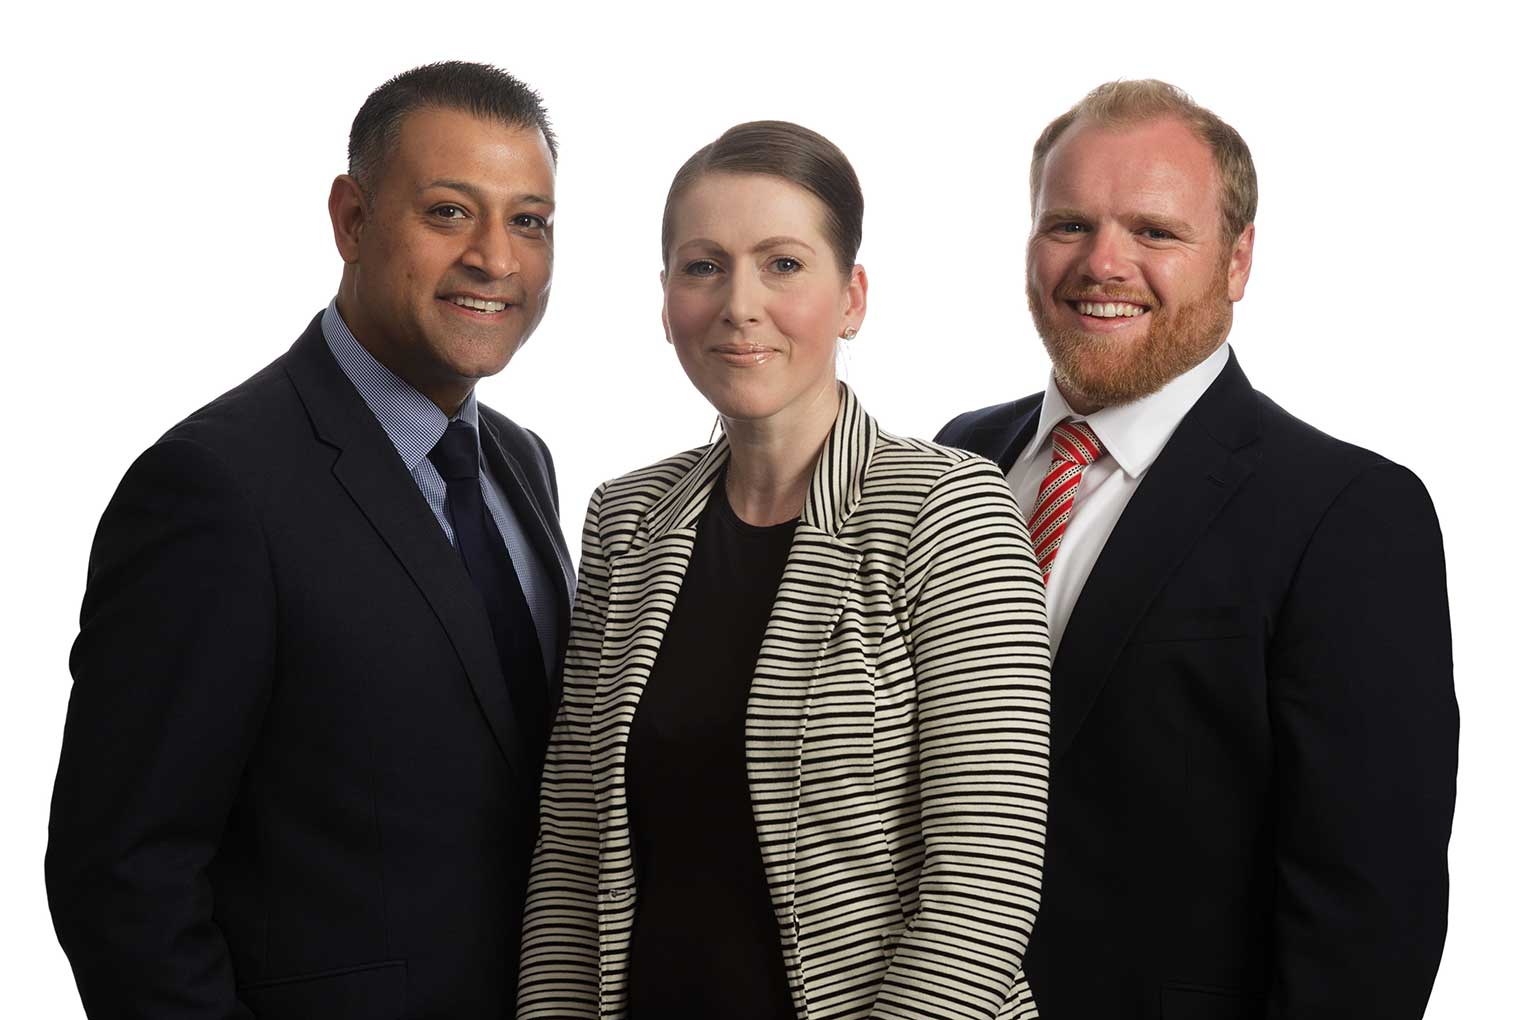 Trio of new broker BDMs for Together